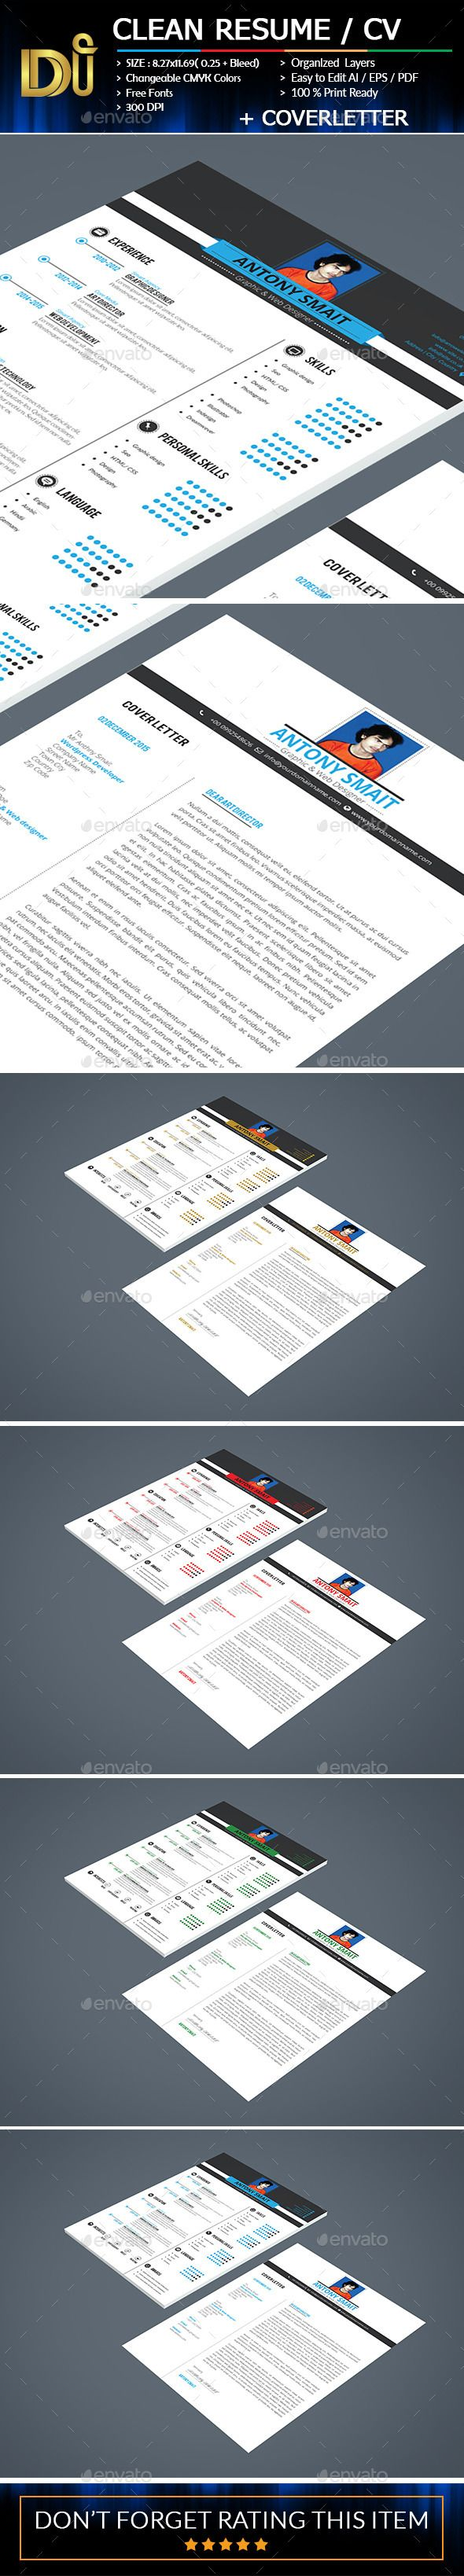 The 25 Best Modern Resume Ideas On Pinterest Resume Modern